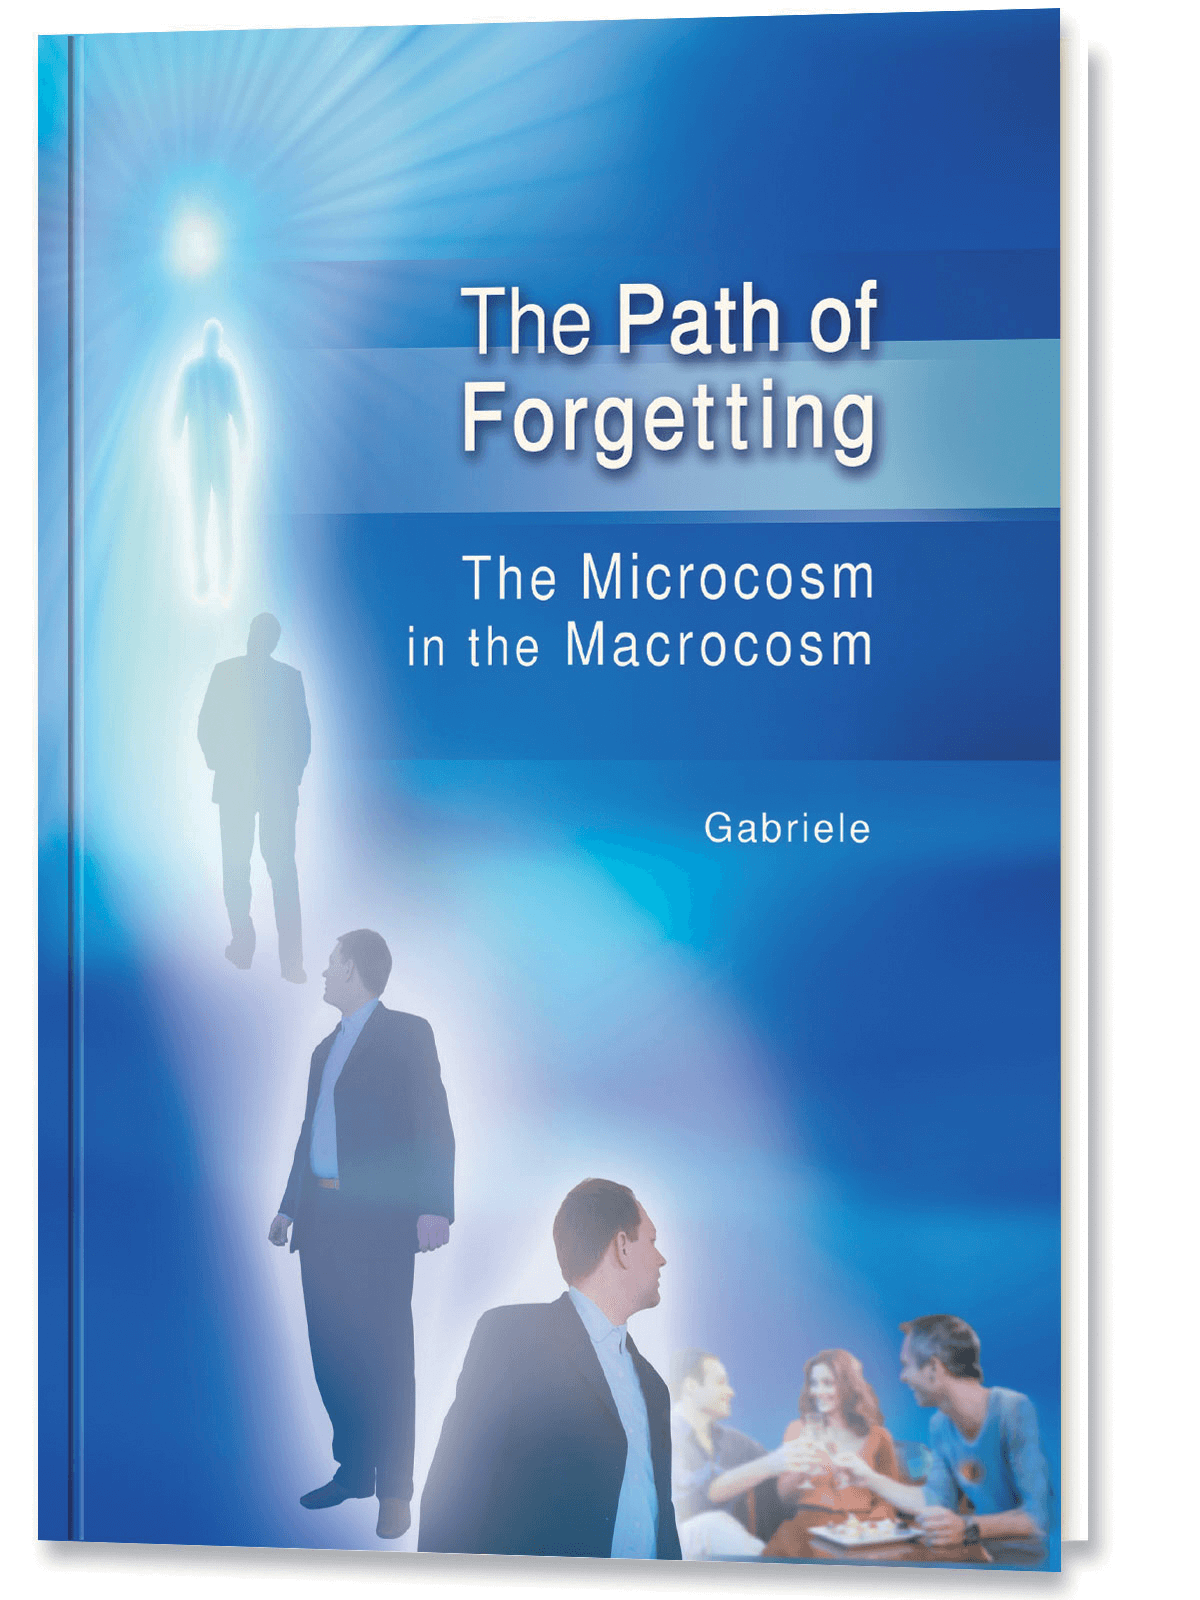 The Path of Forgetting